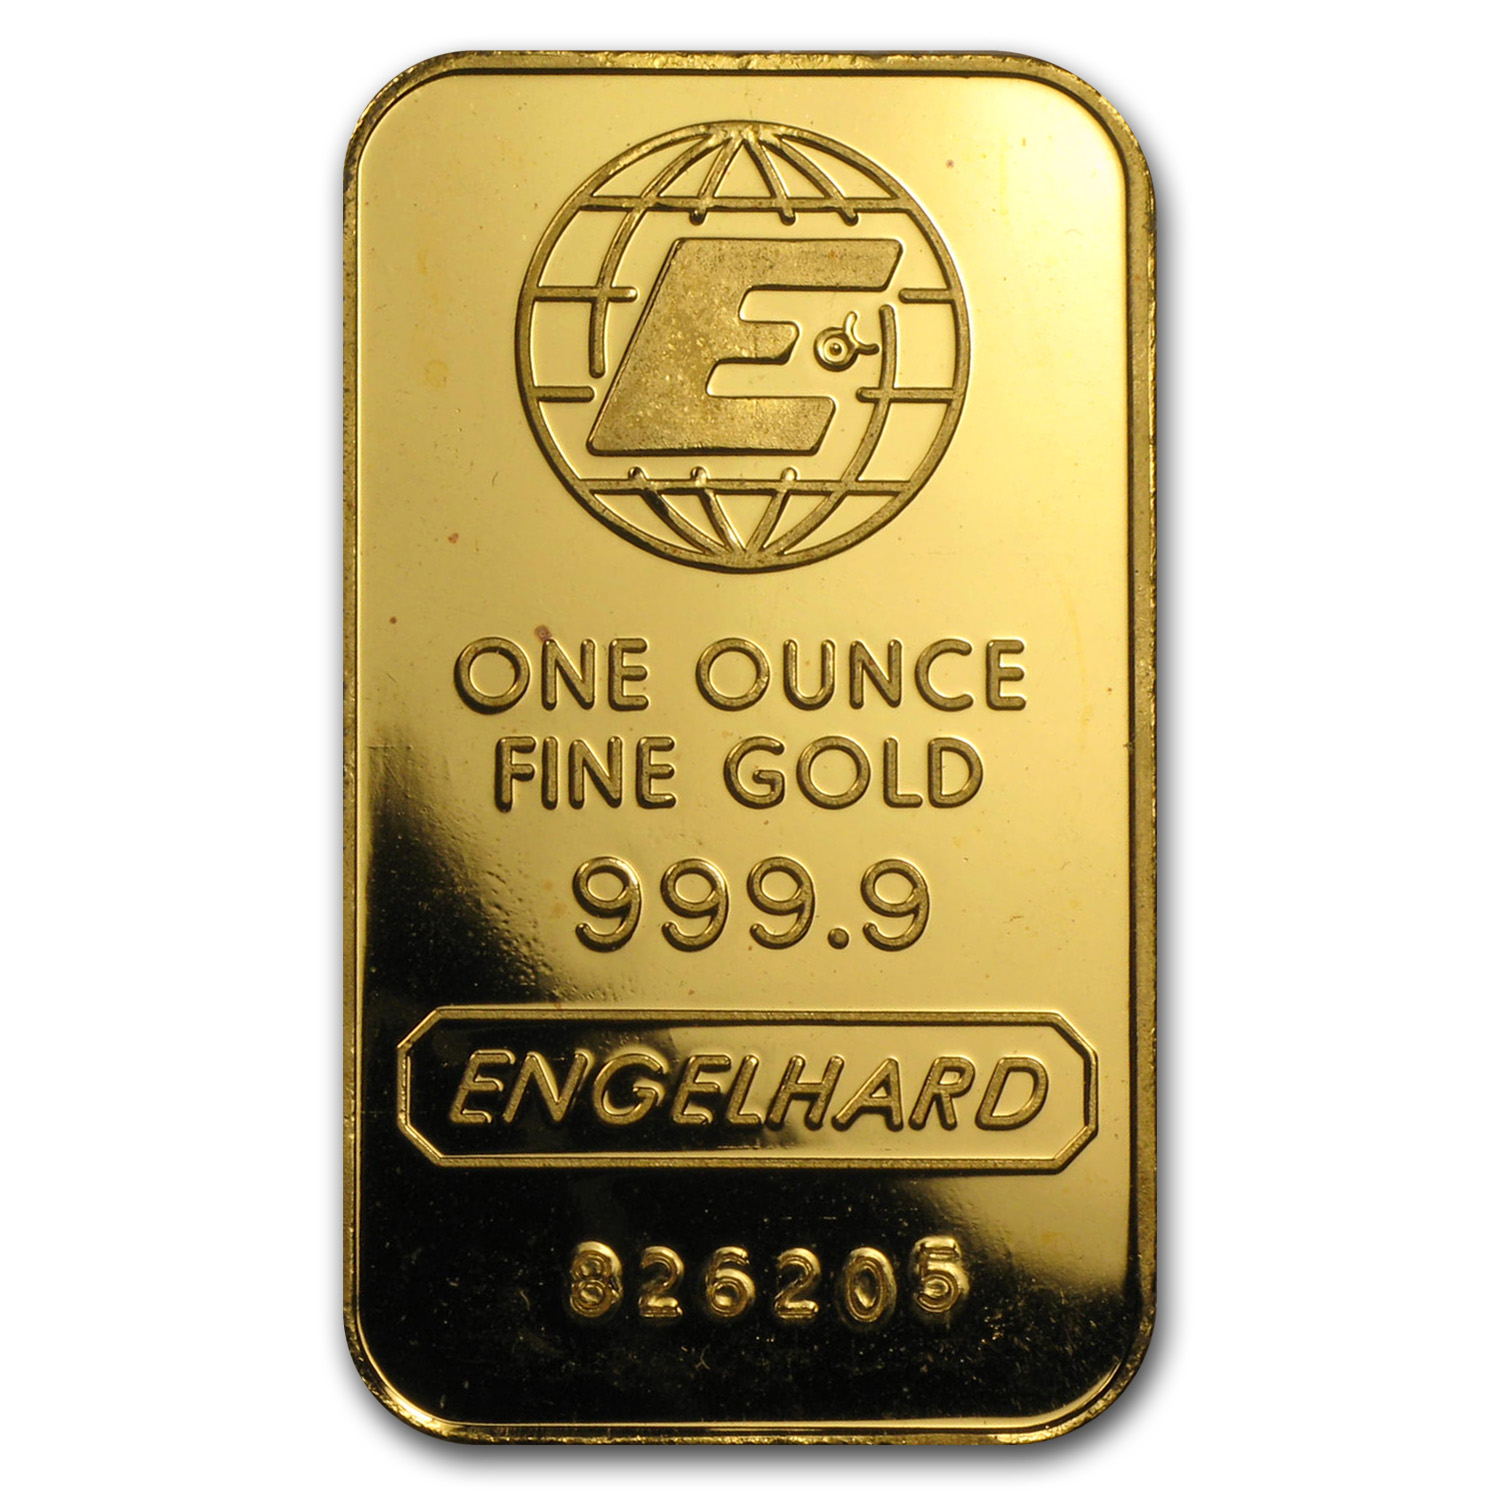 1 oz Gold Bar - Engelhard ('E' logo)